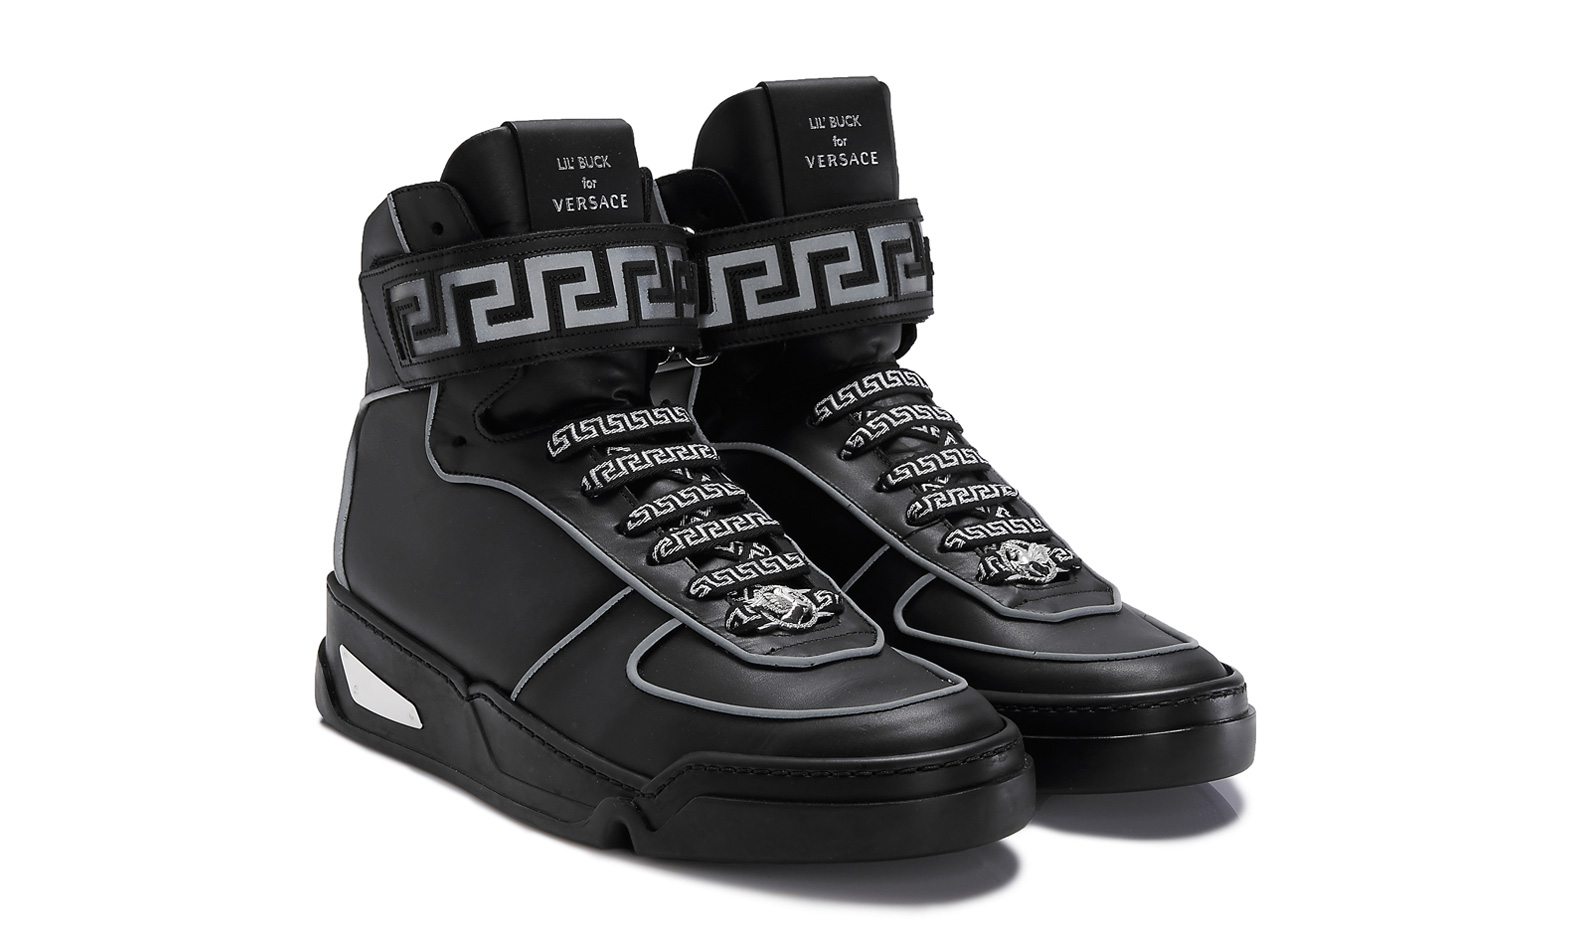 Versace Black Leather Shoes